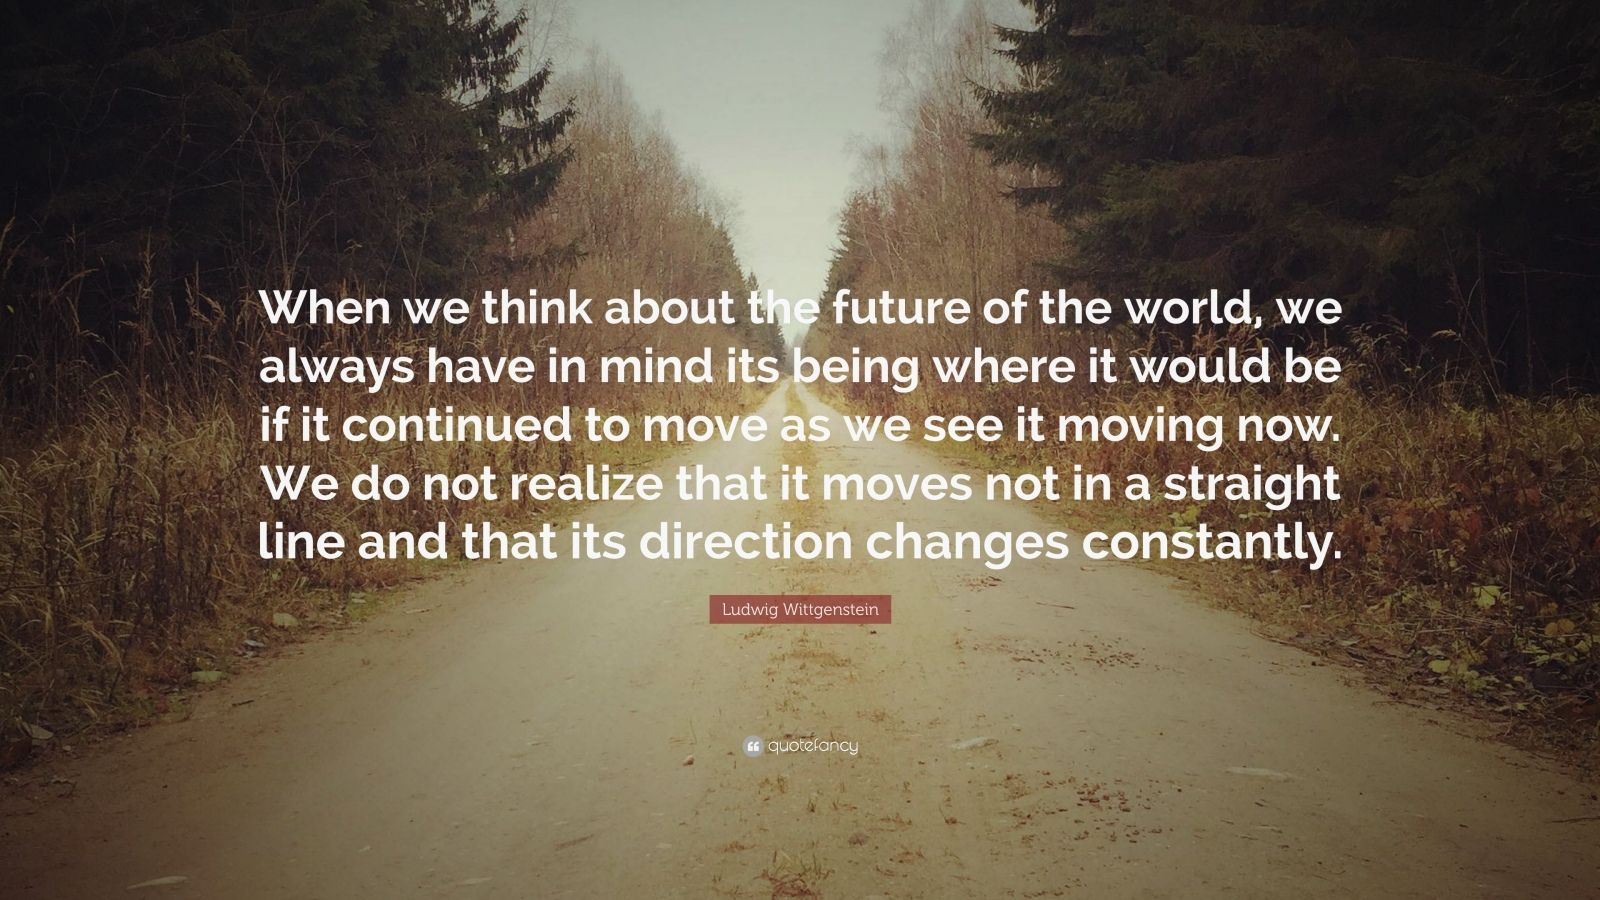 """Ludwig Wittgenstein Quote: """"When we think about the future of the world, we always have in mind its being where it would be if it continued to move as we see it moving now. We do not realize that it moves not in a straight line and that its direction changes constantly."""""""